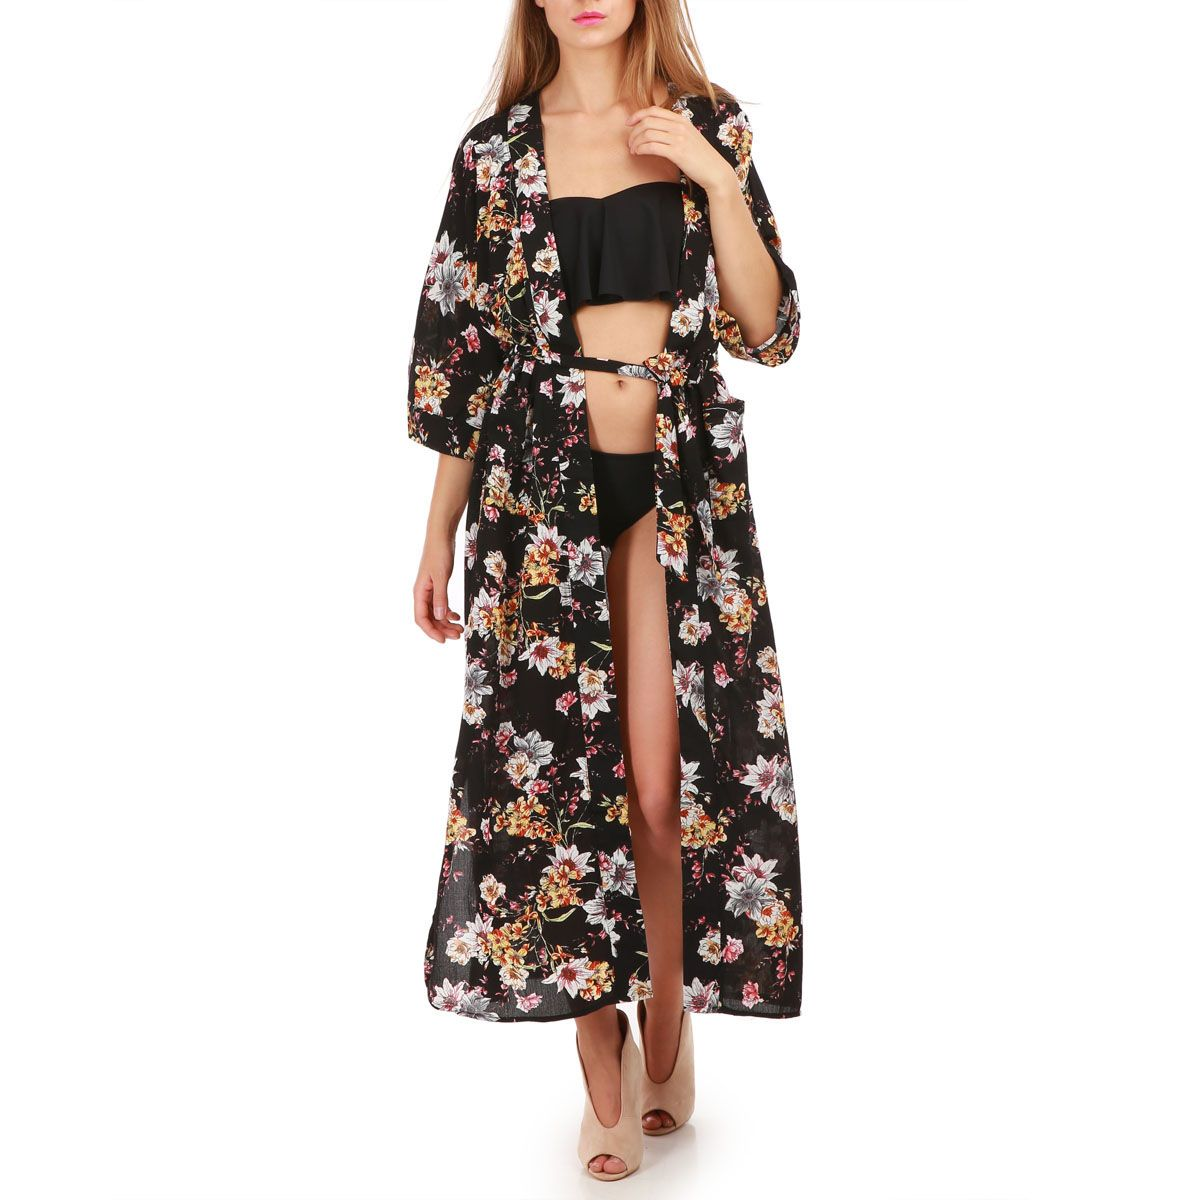 kimono long noir imprim floral femme pas cher la modeuse. Black Bedroom Furniture Sets. Home Design Ideas